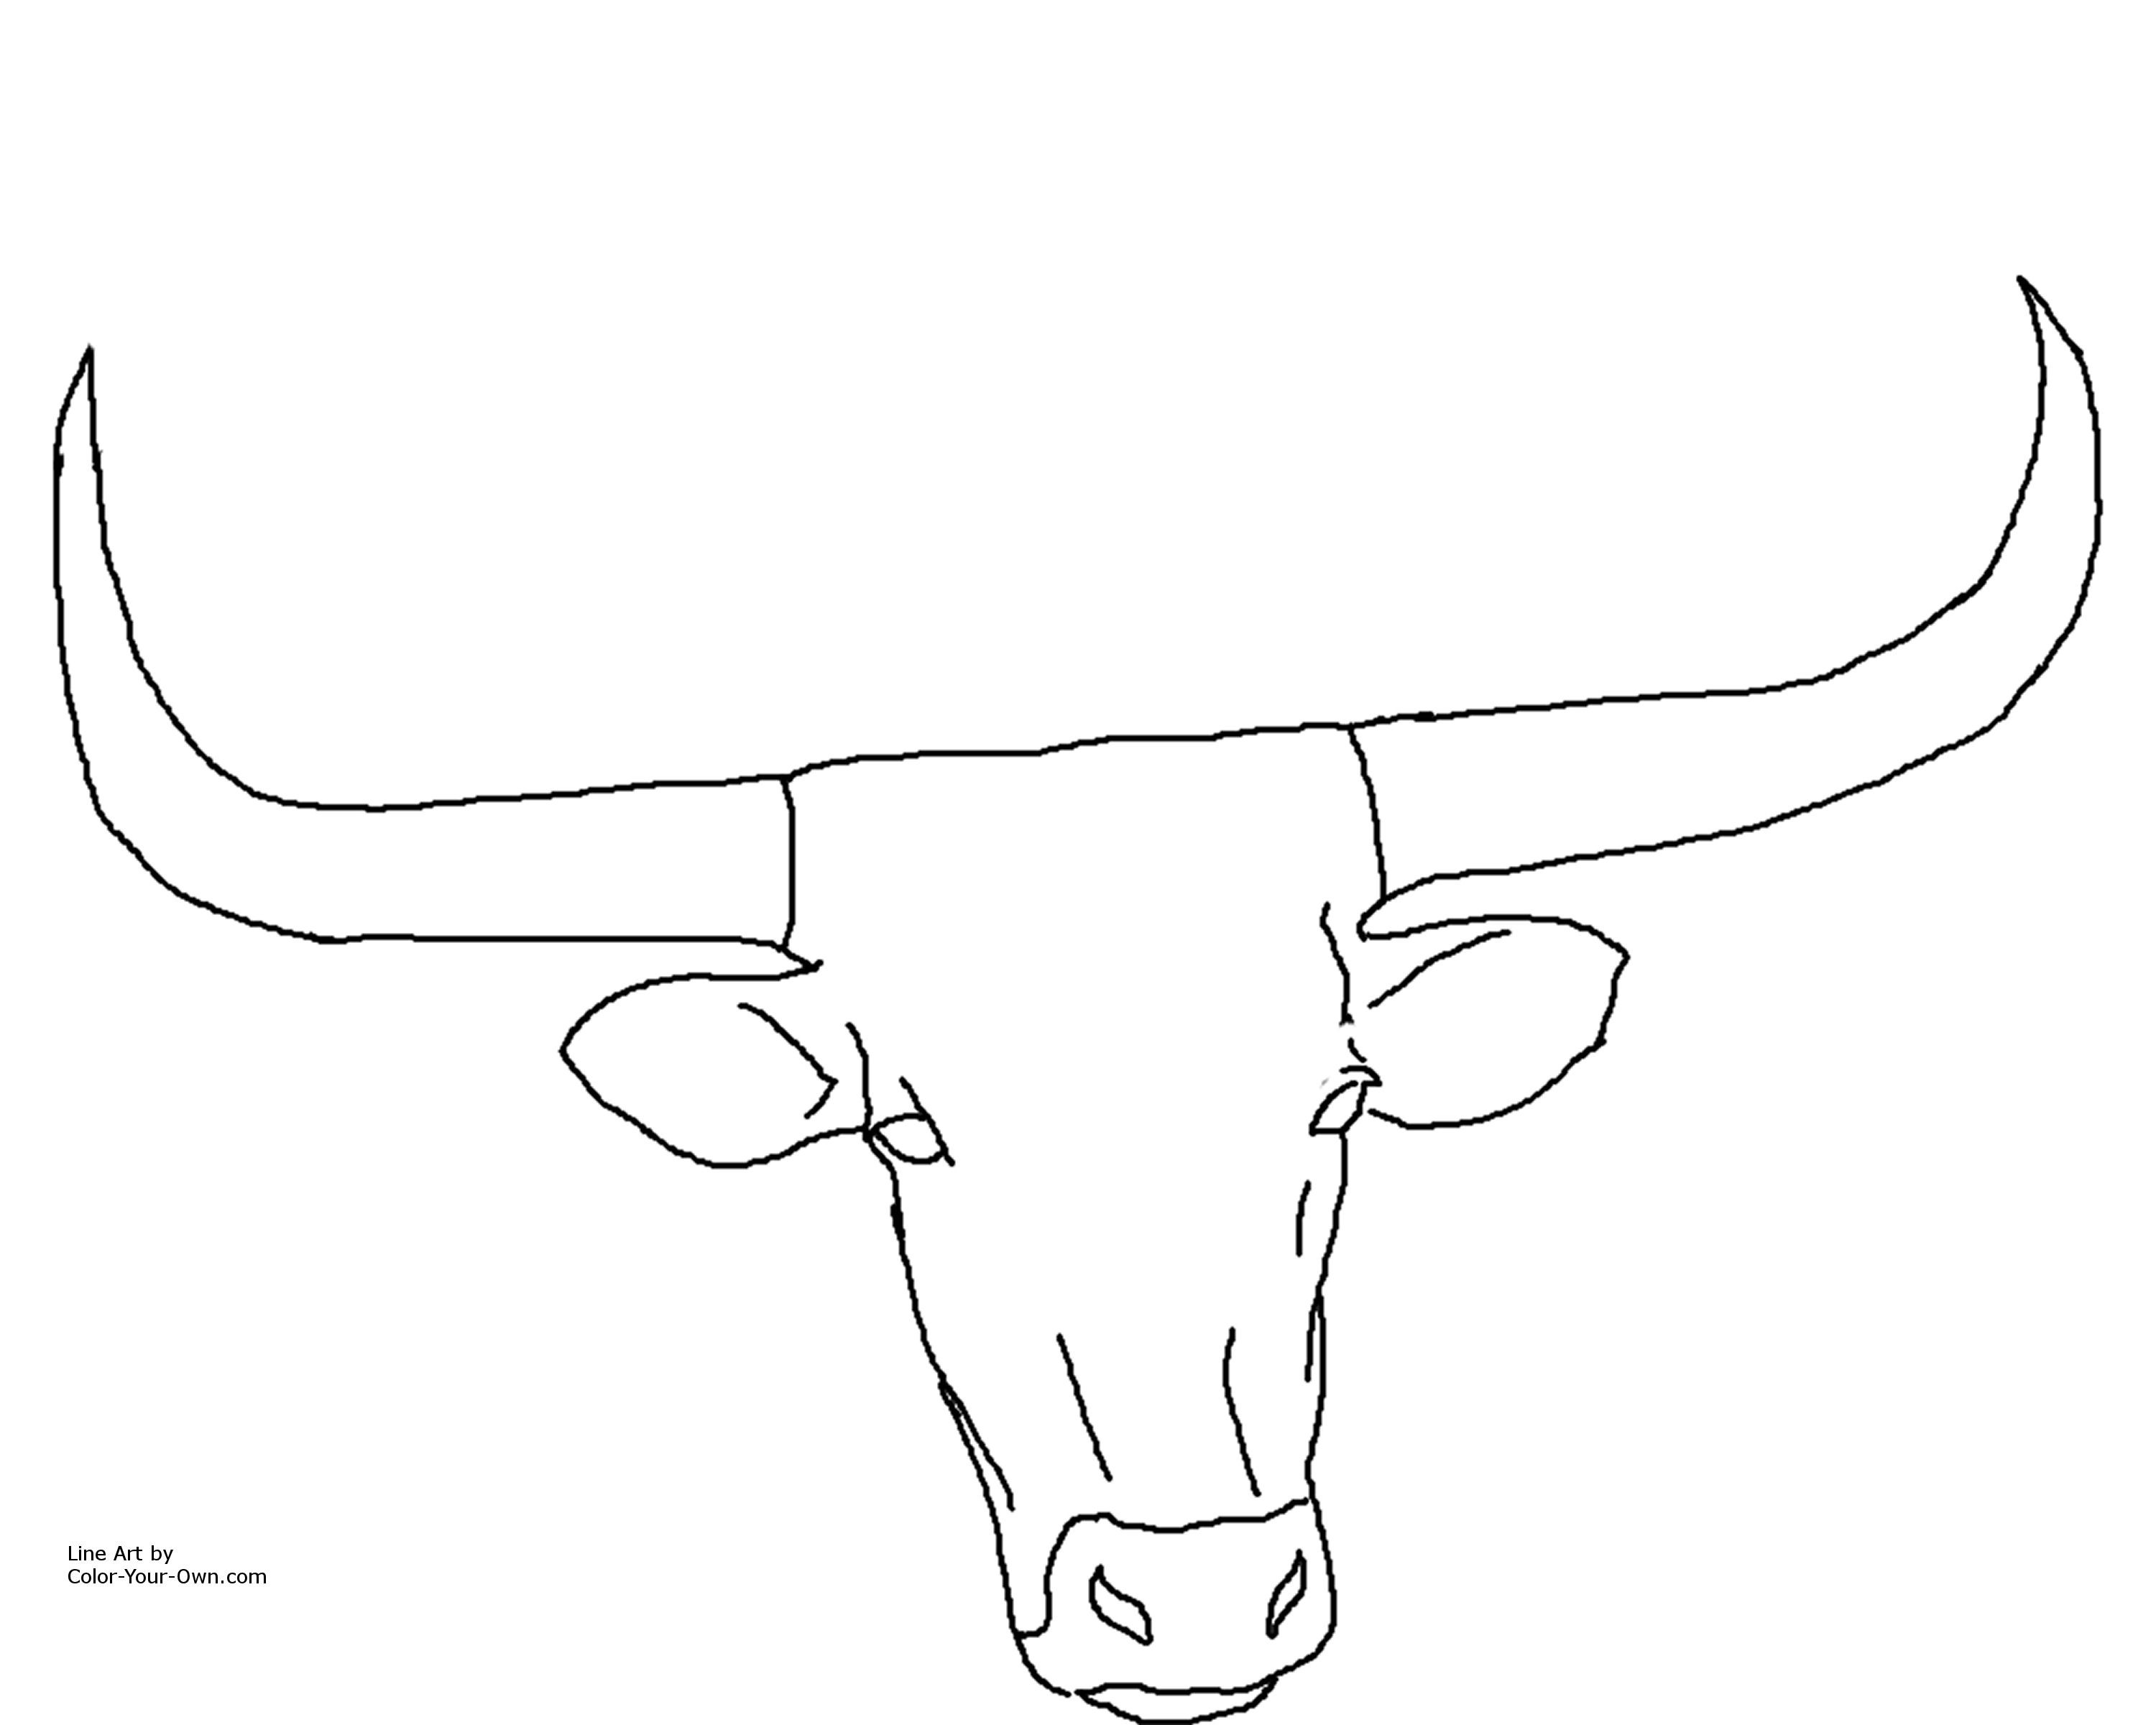 Longhorn Bull Drawing at GetDrawings.com | Free for personal use ...